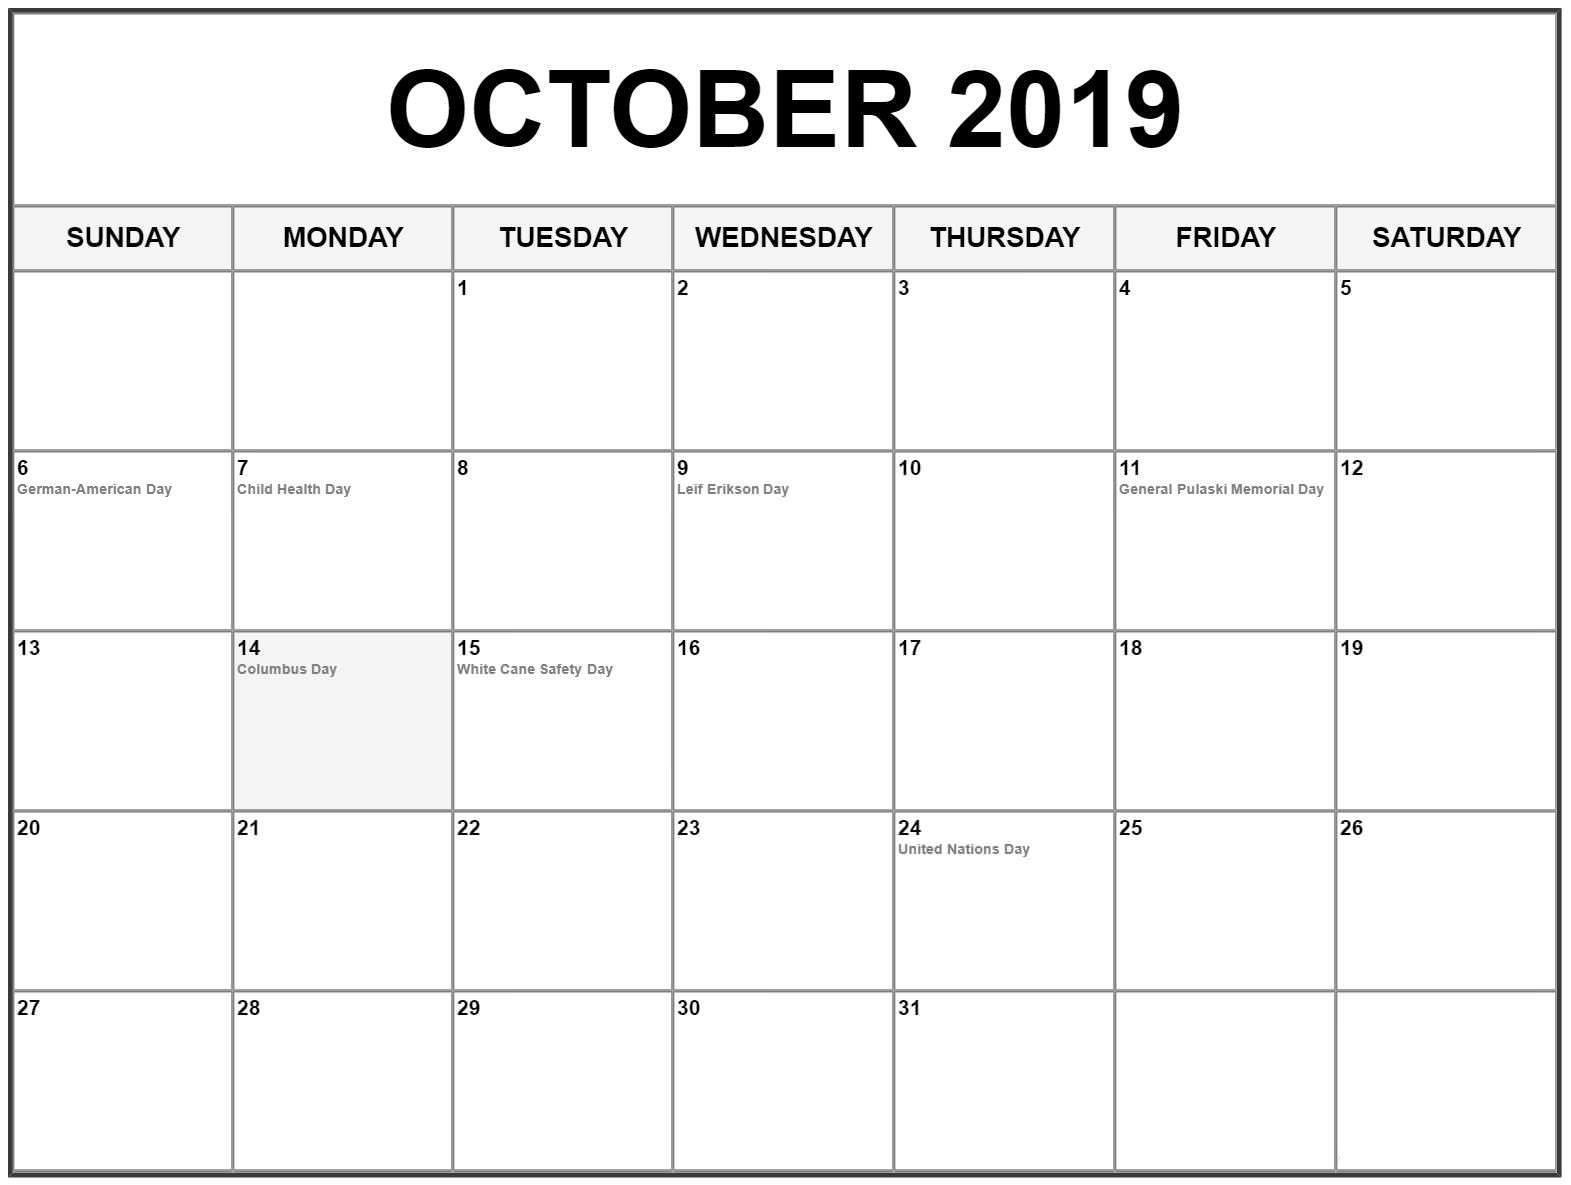 October 2019 Calendar Holidays USA